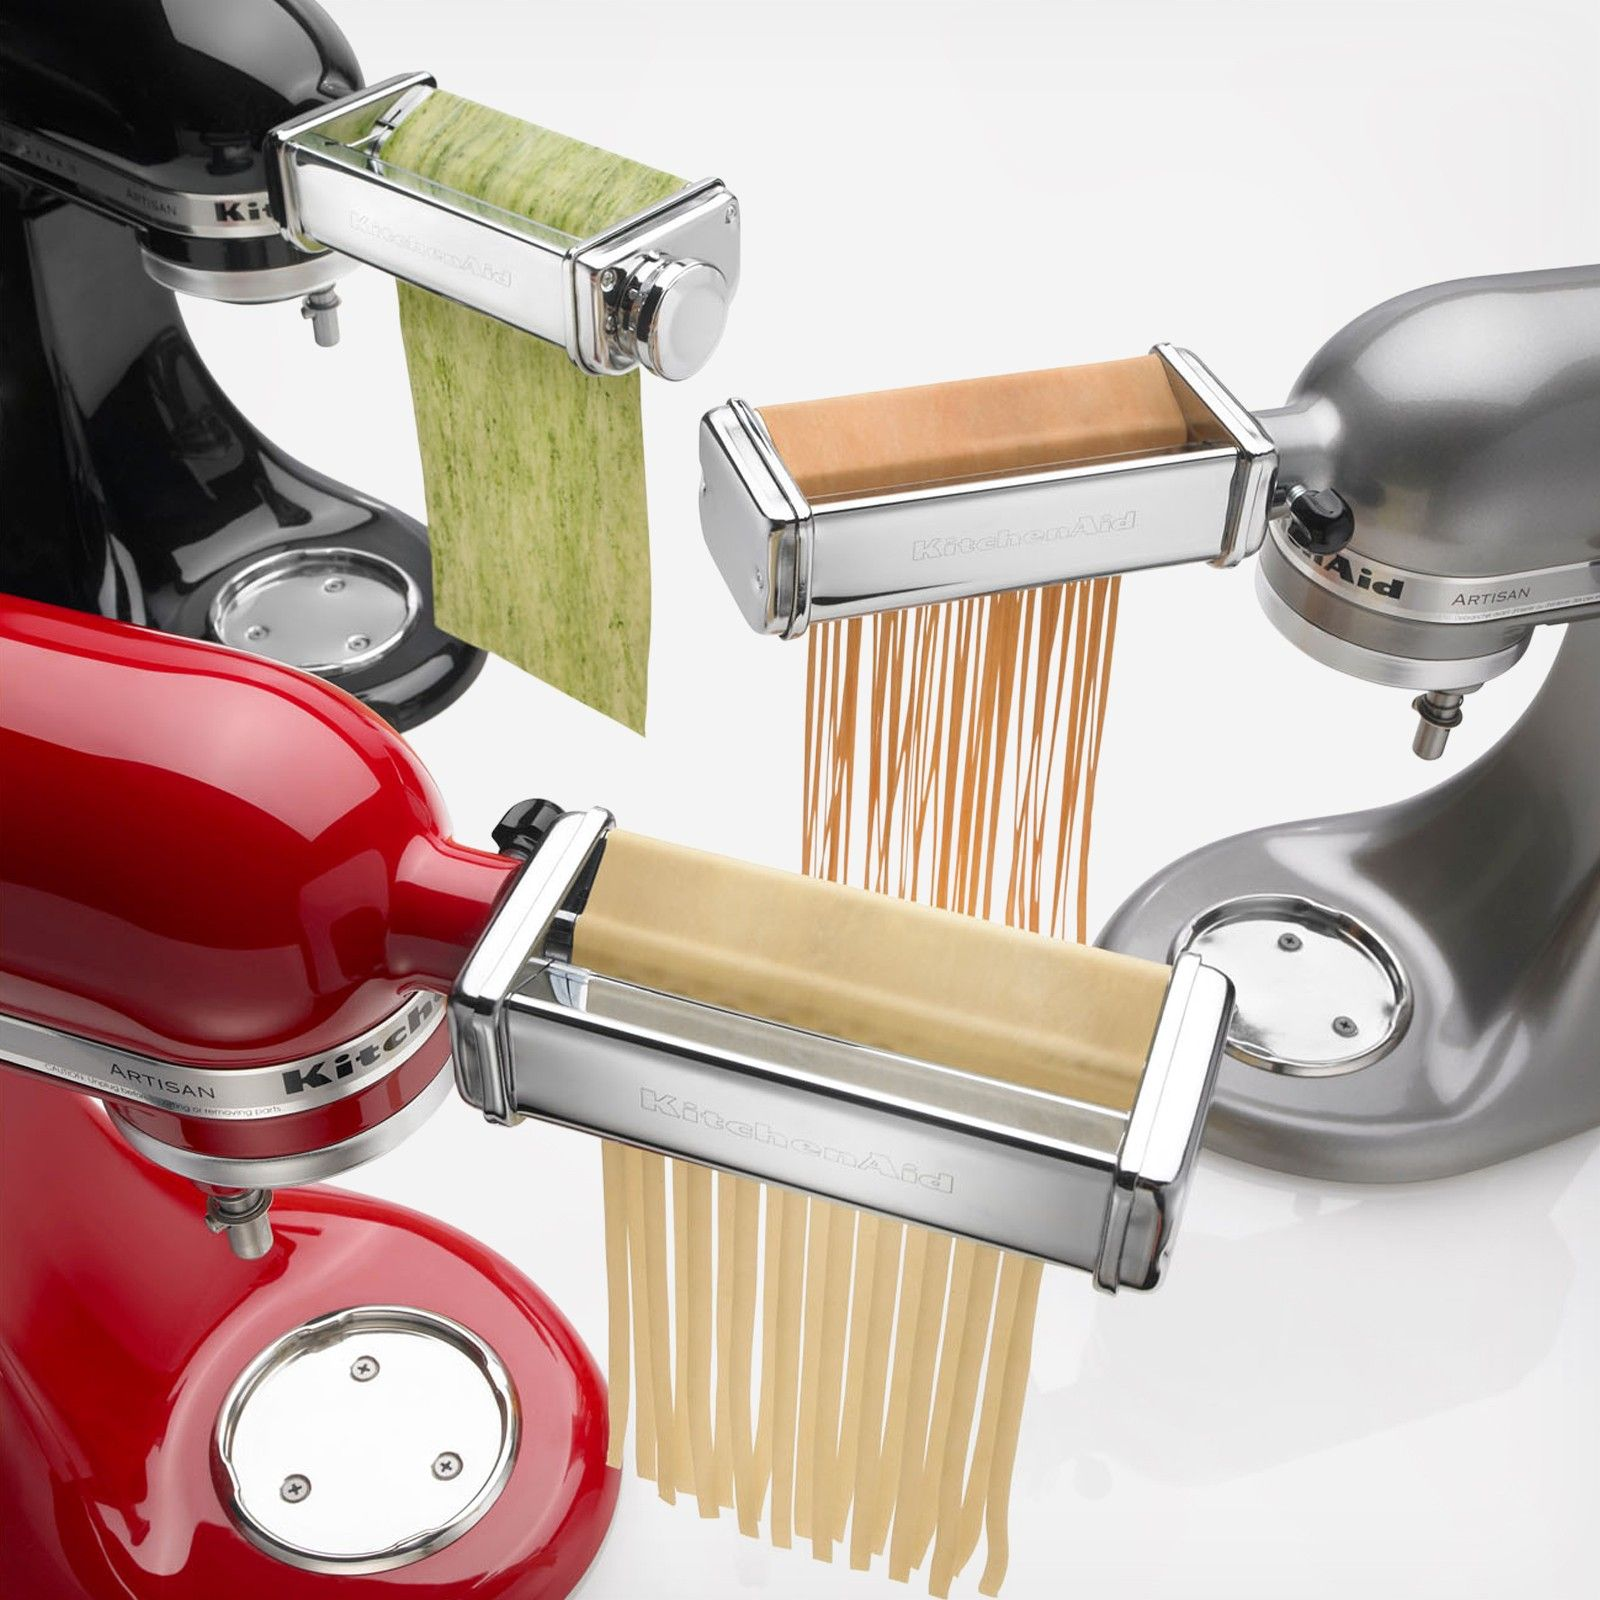 The Pasta Roller And Cutter Attachments For Kitchenaid Stand